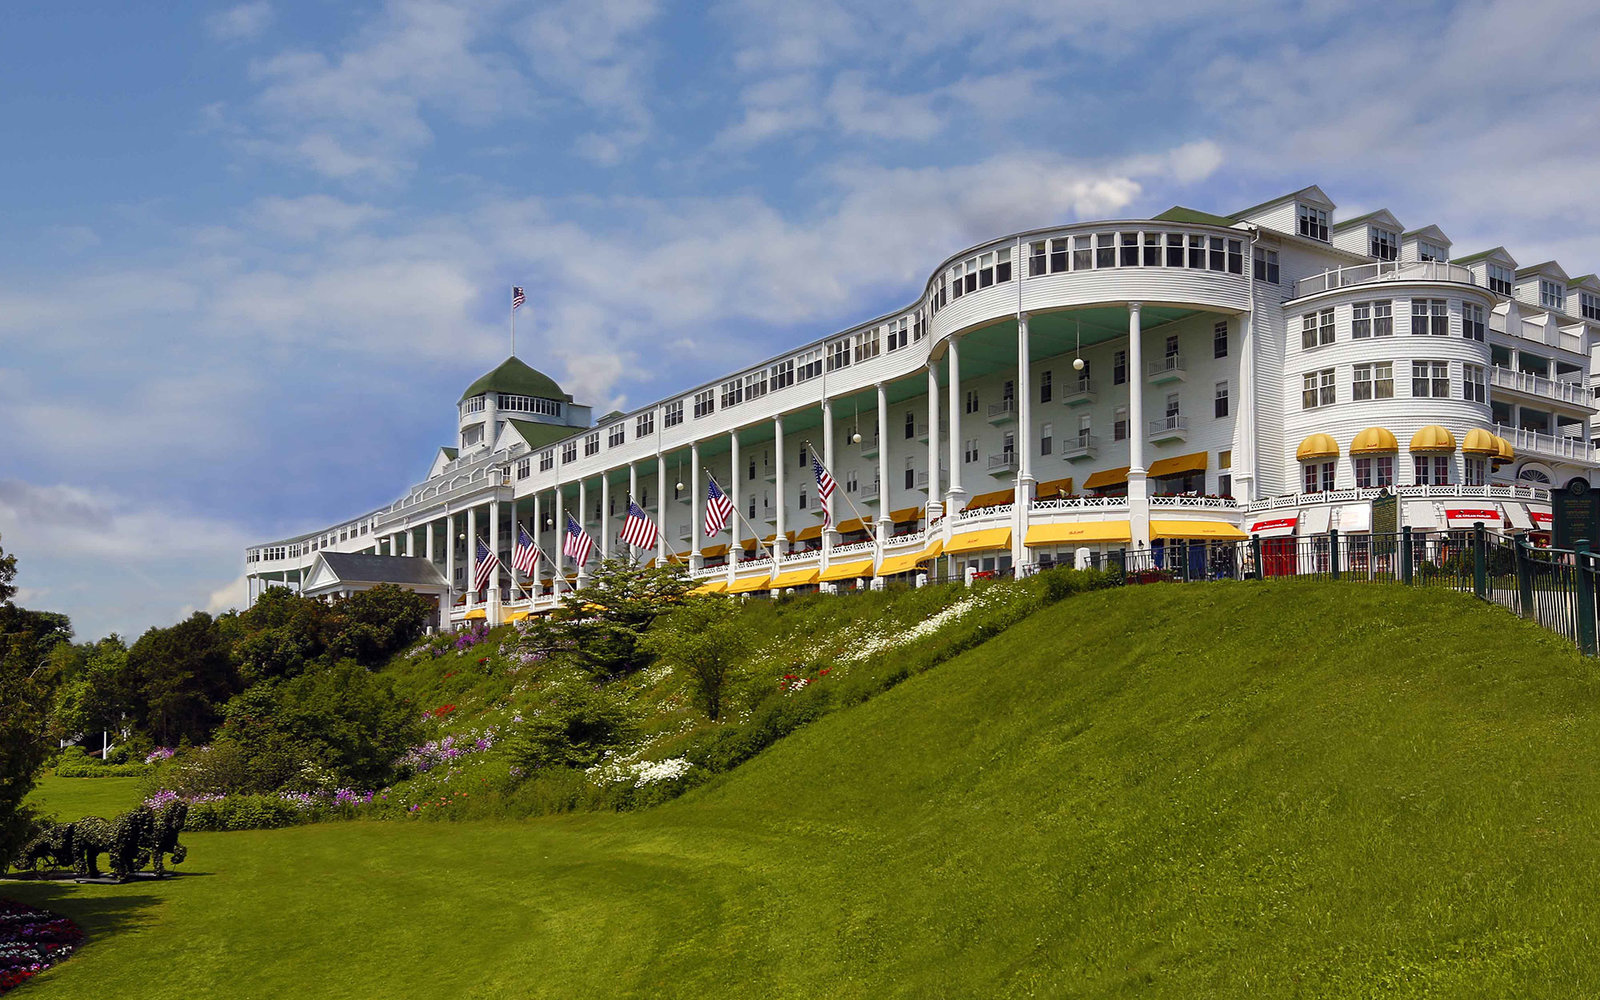 Michigan: Grand Hotel, Mackinac Island